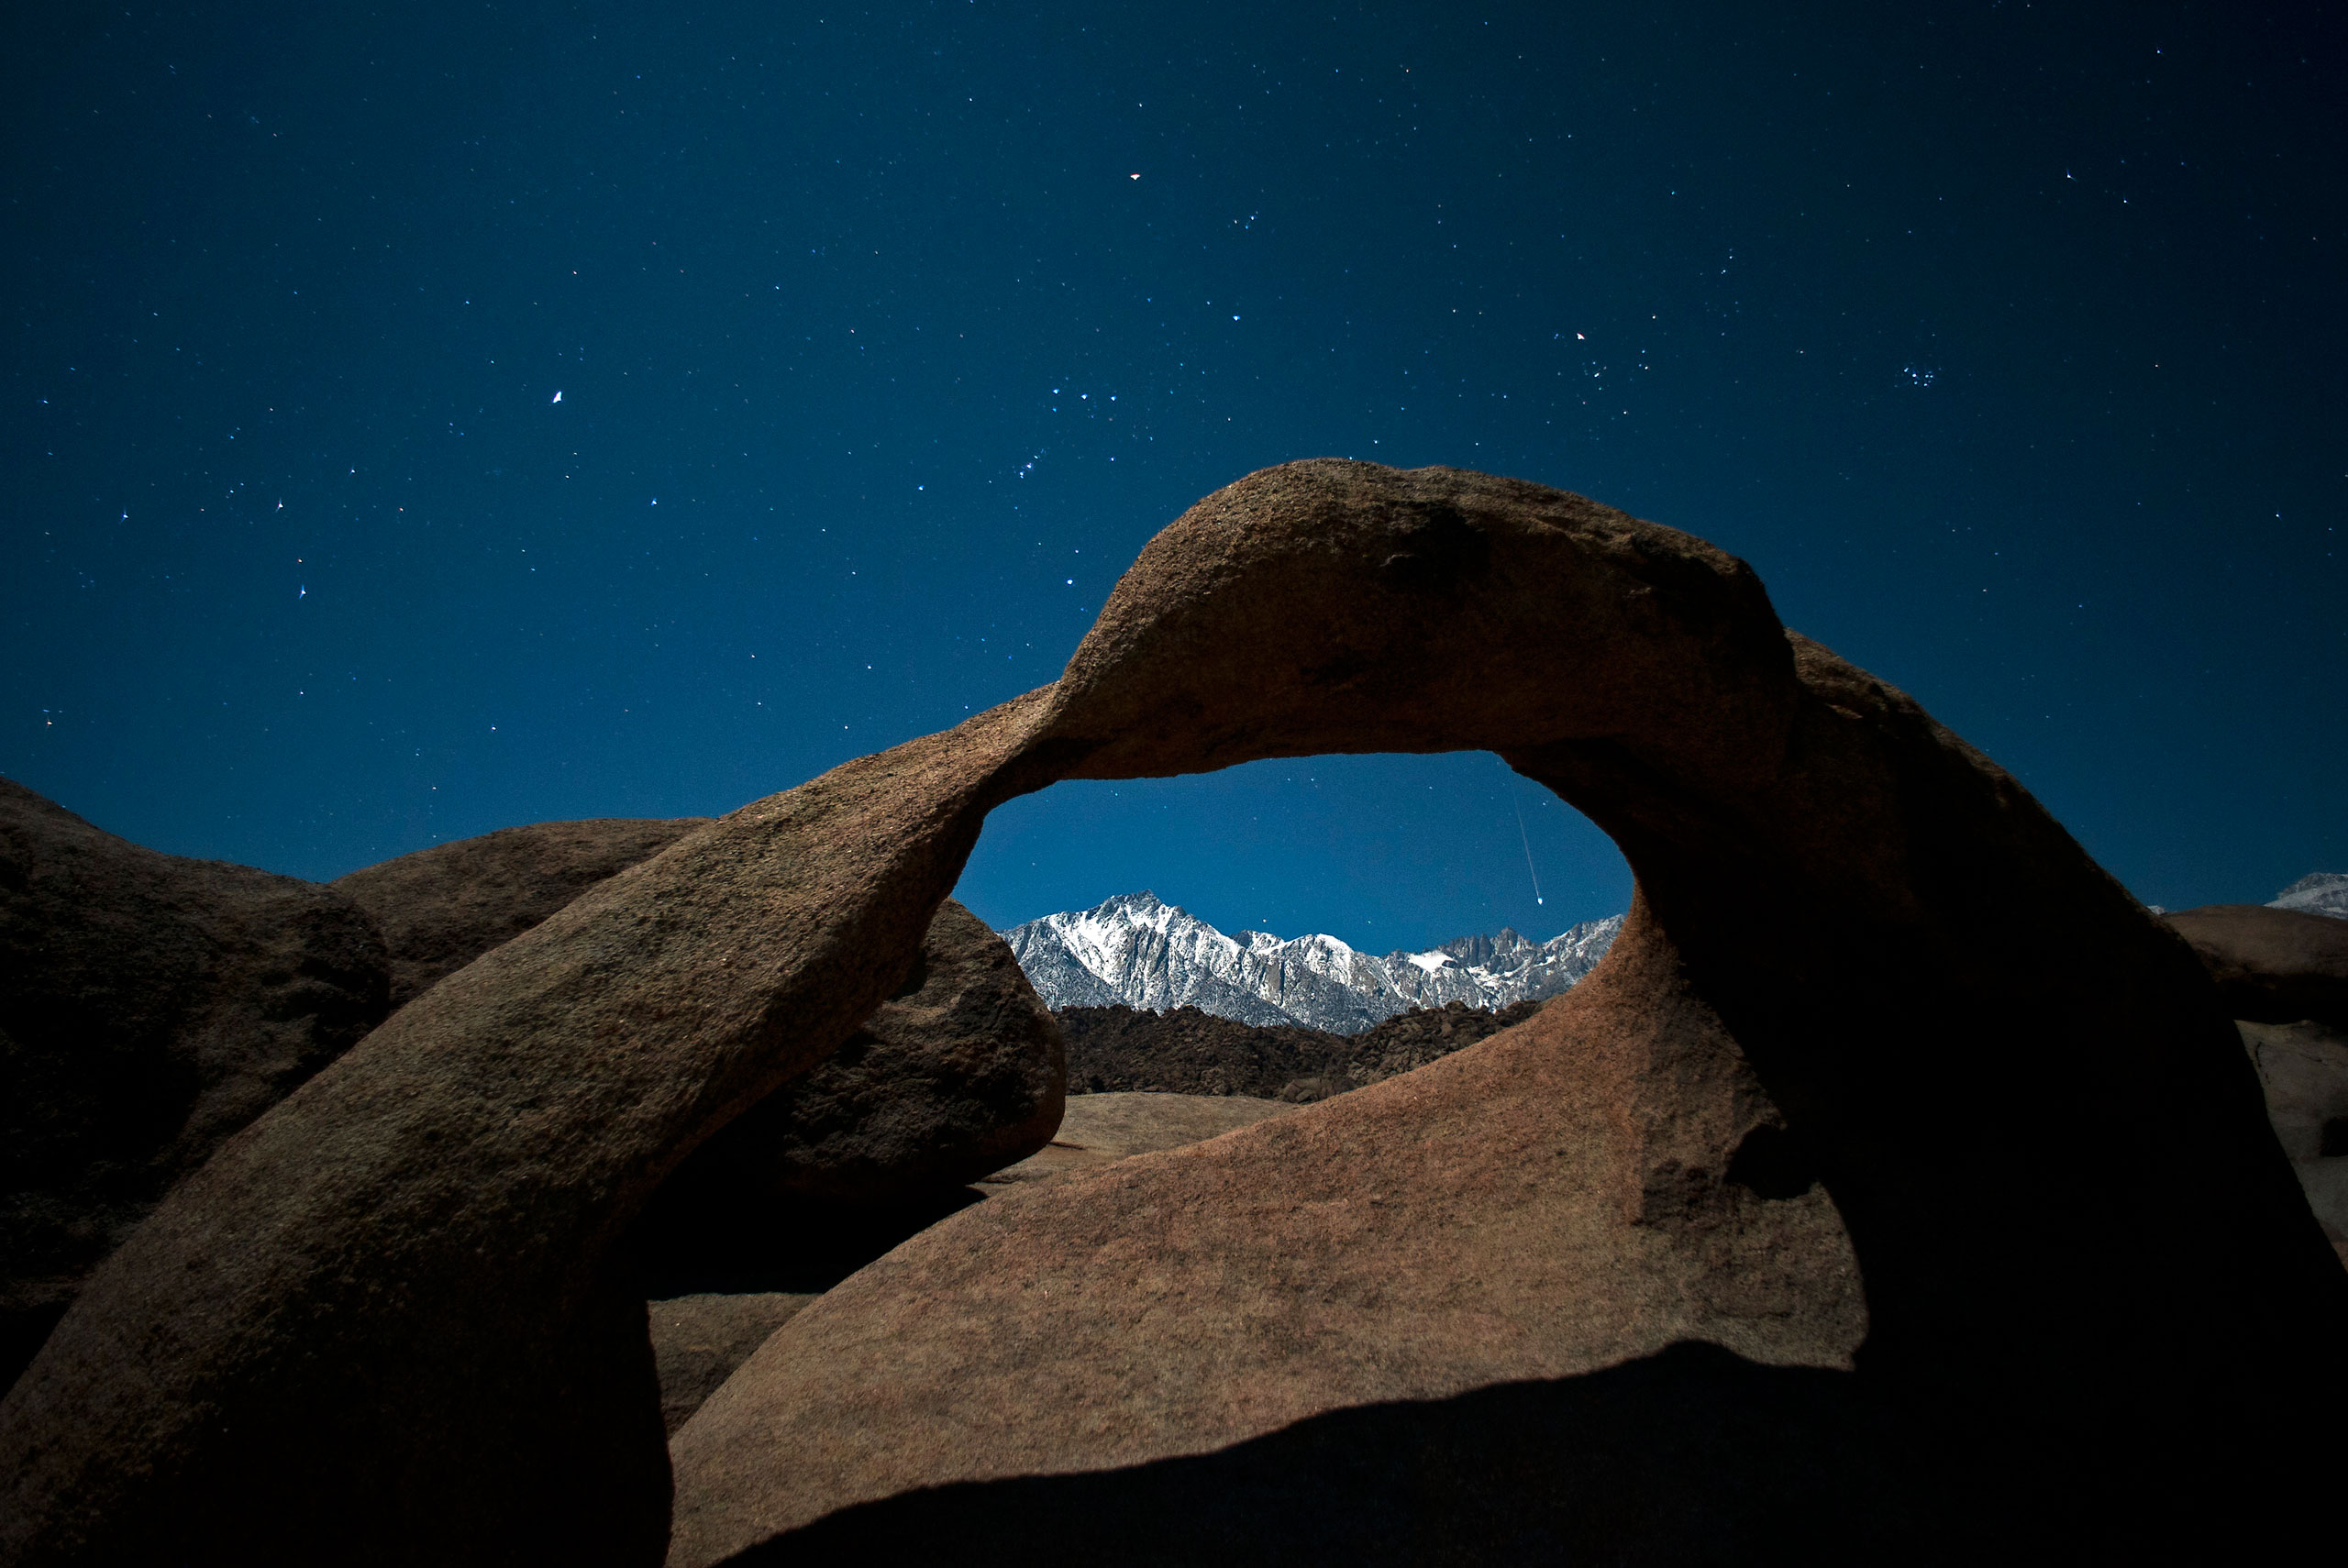 Framed within Mobuis Arch, a Geminid meteor streaks through a starfilled sky above the Sierra Nevada mountains in California's Eastern Sierra on Dec. 14, 2011.